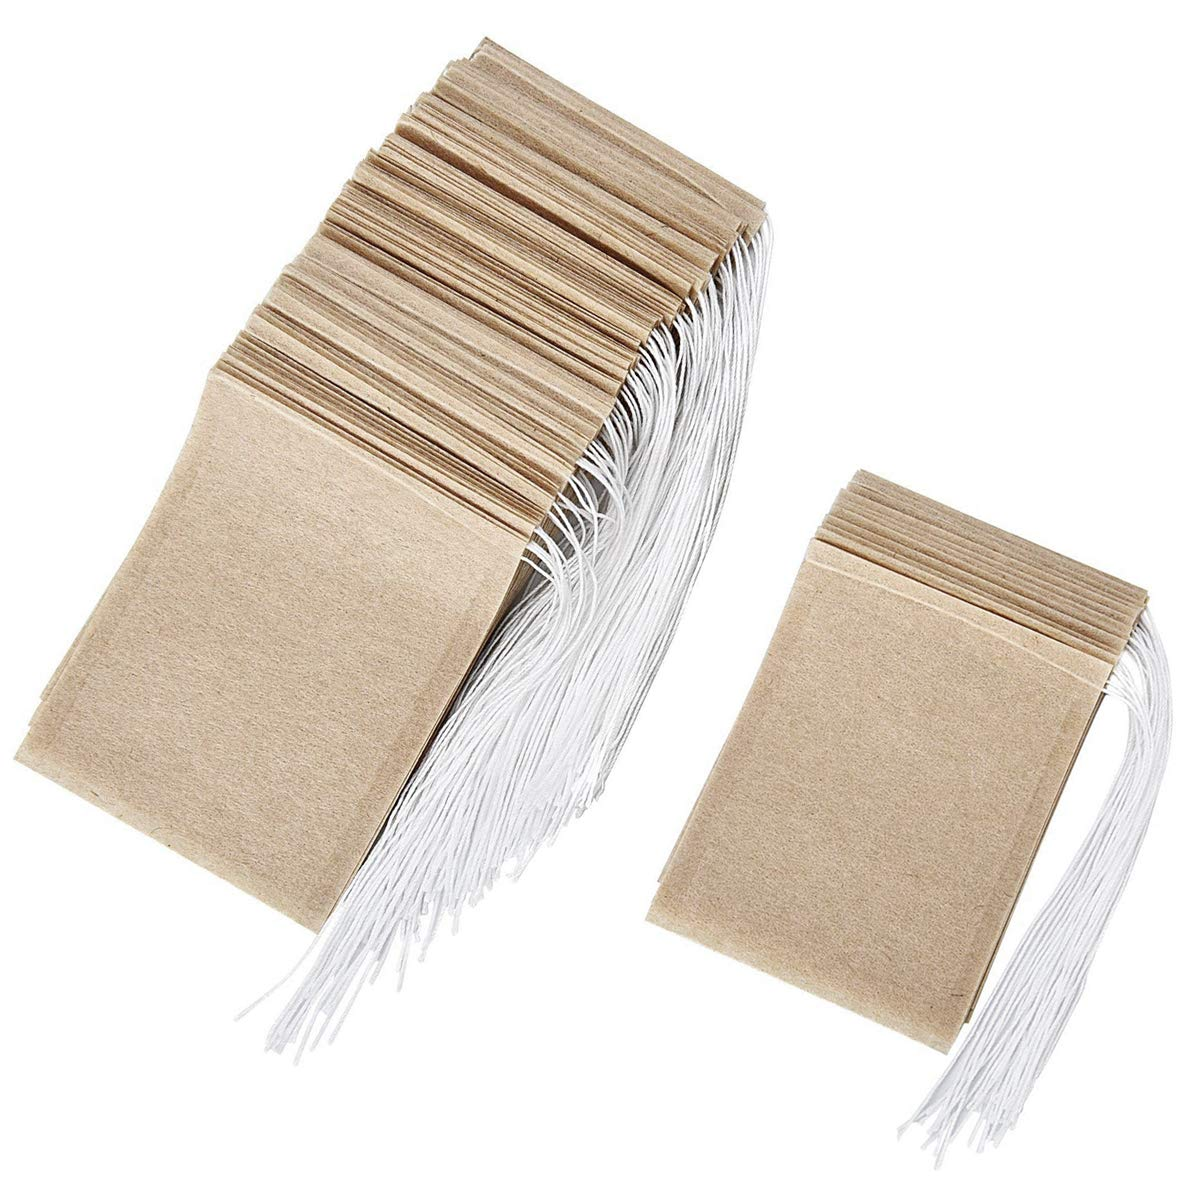 Dokpav 200 Pack Empty Tea Bags Disposable Drawstring Seal Filter Bag -Wood Color-for Loose Tea-5 * 7cm and 6 * 8cm